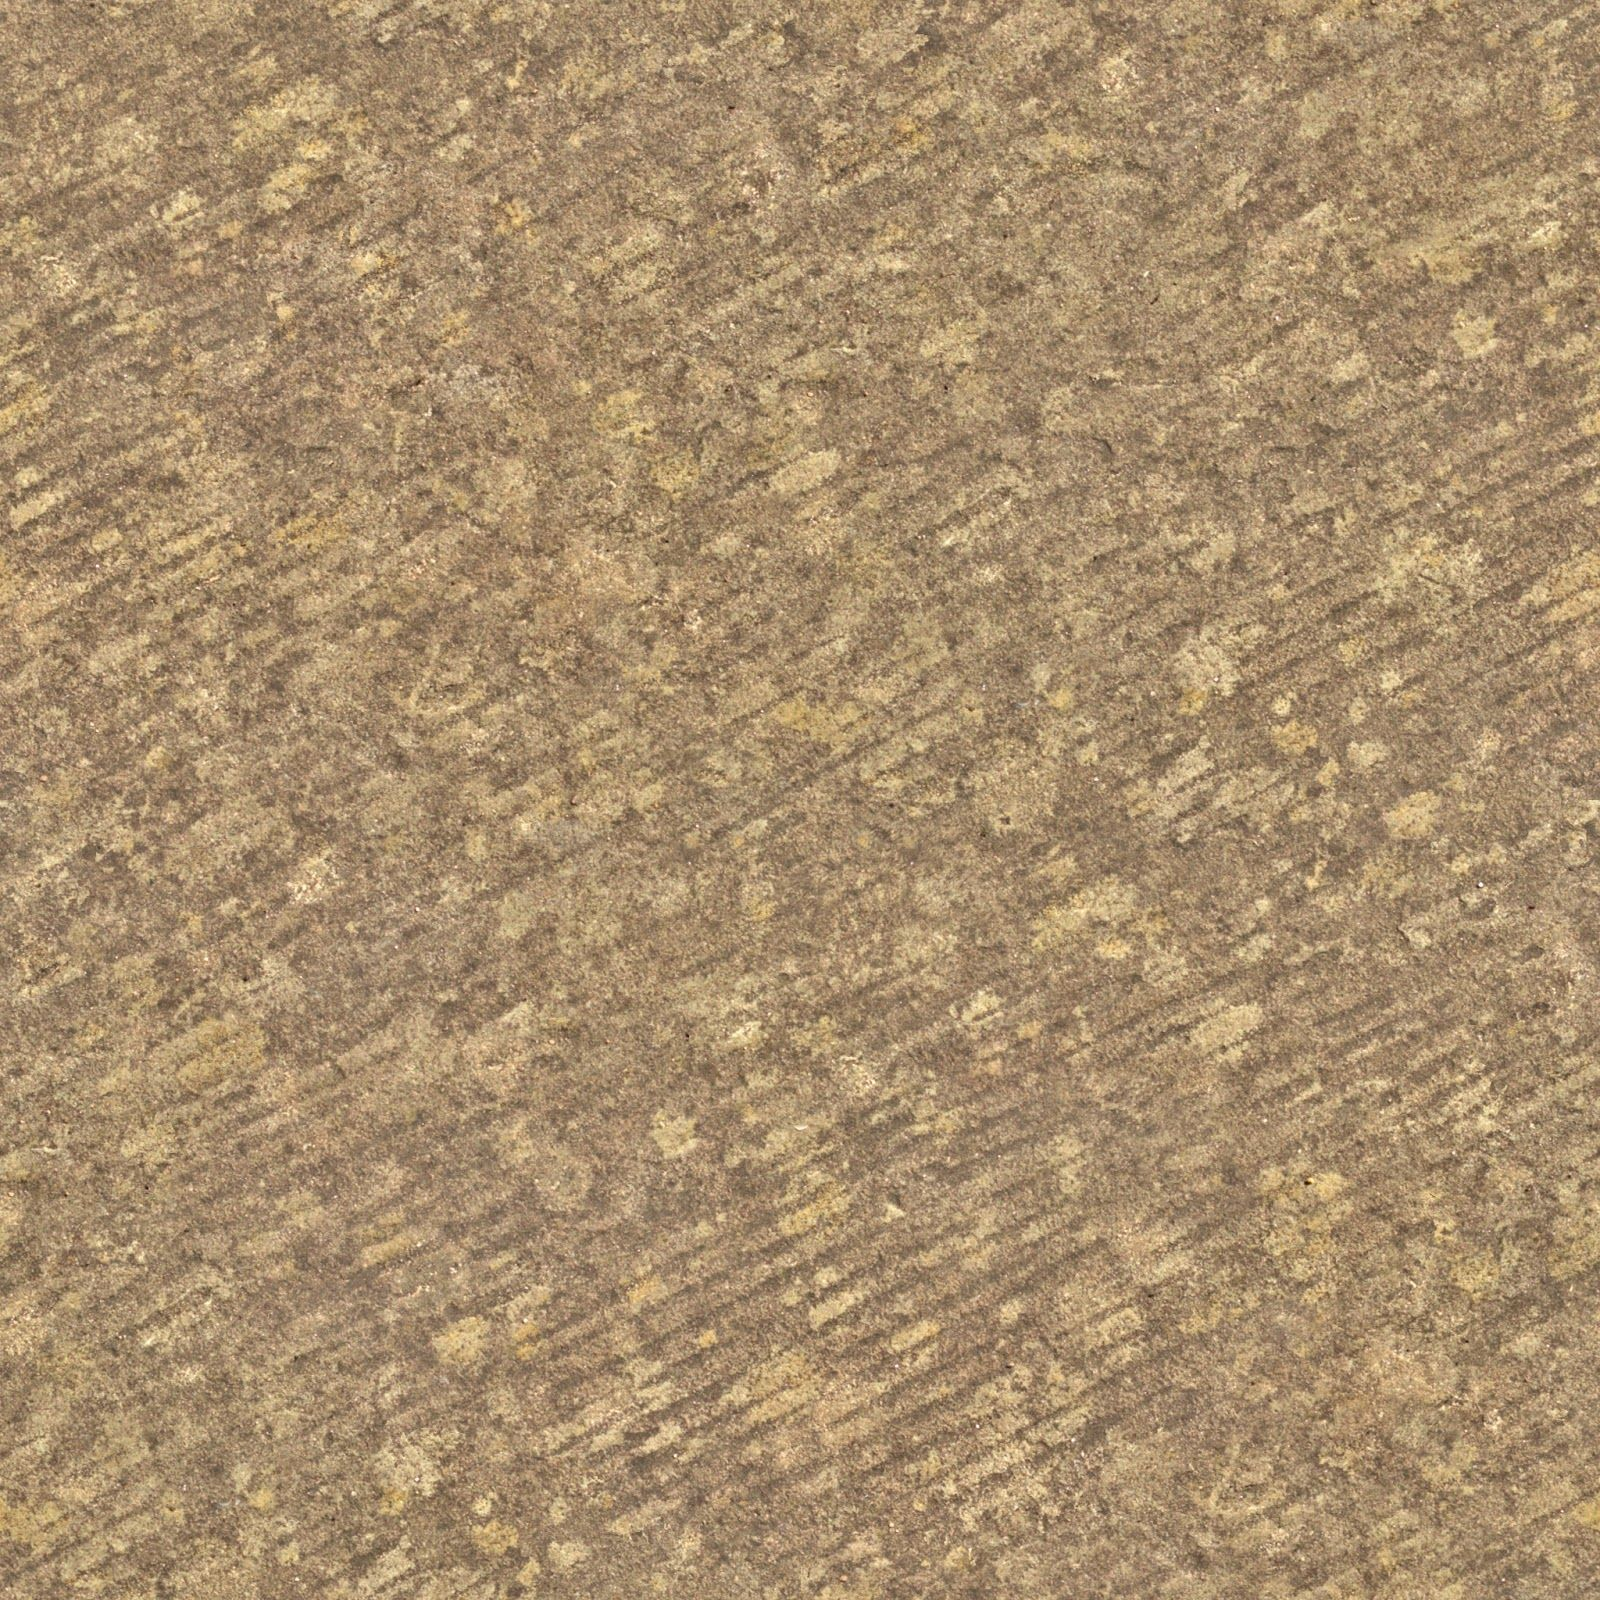 Stone 1 rock cave mountain brown seamless texture 2048x2048